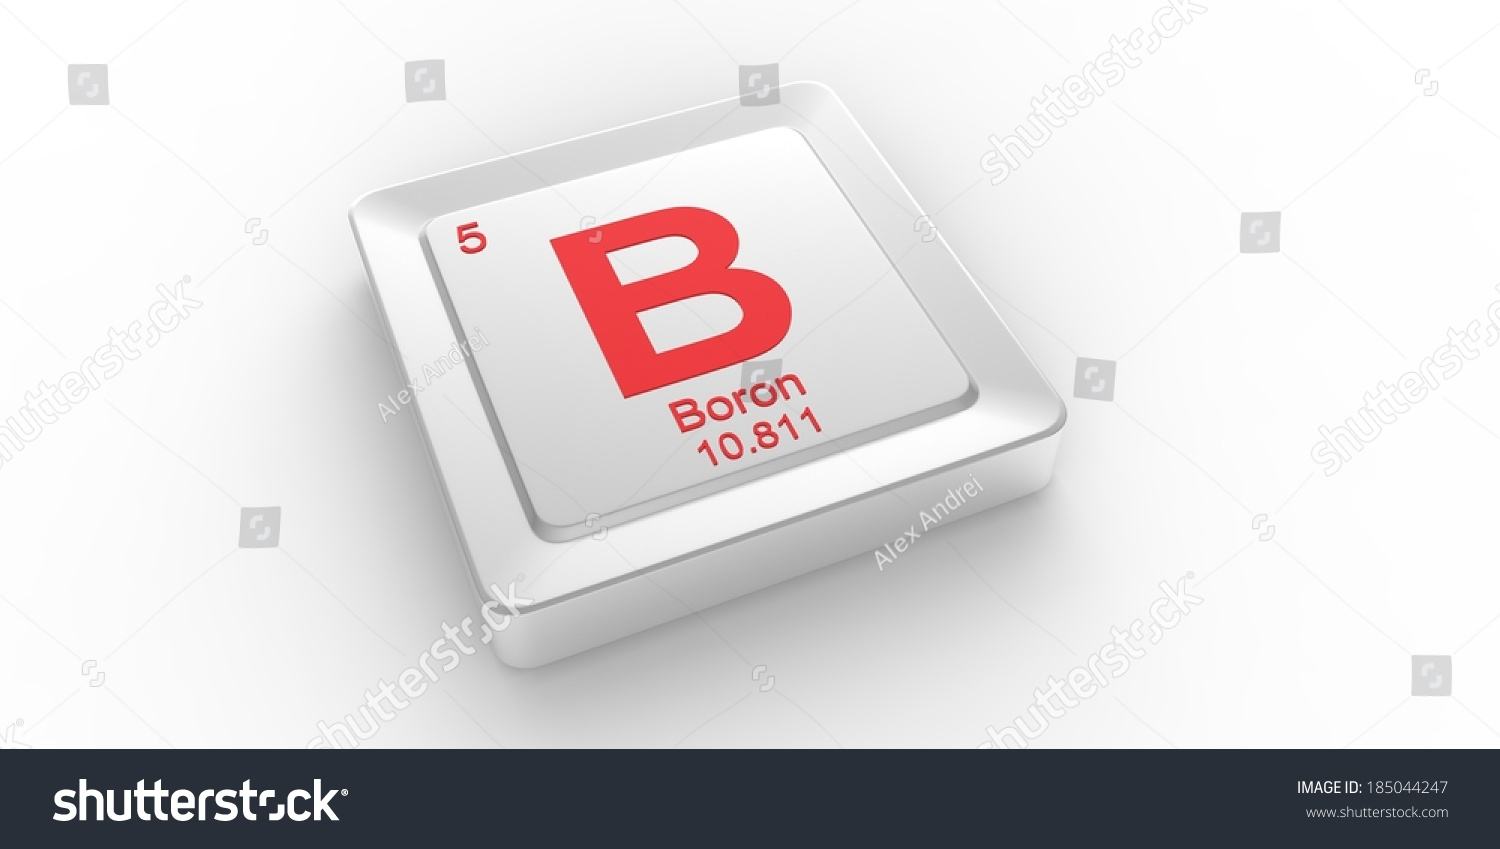 B symbol 5 material boron chemical stock illustration 185044247 b symbol 5 material for boron chemical element of the periodic table gamestrikefo Image collections